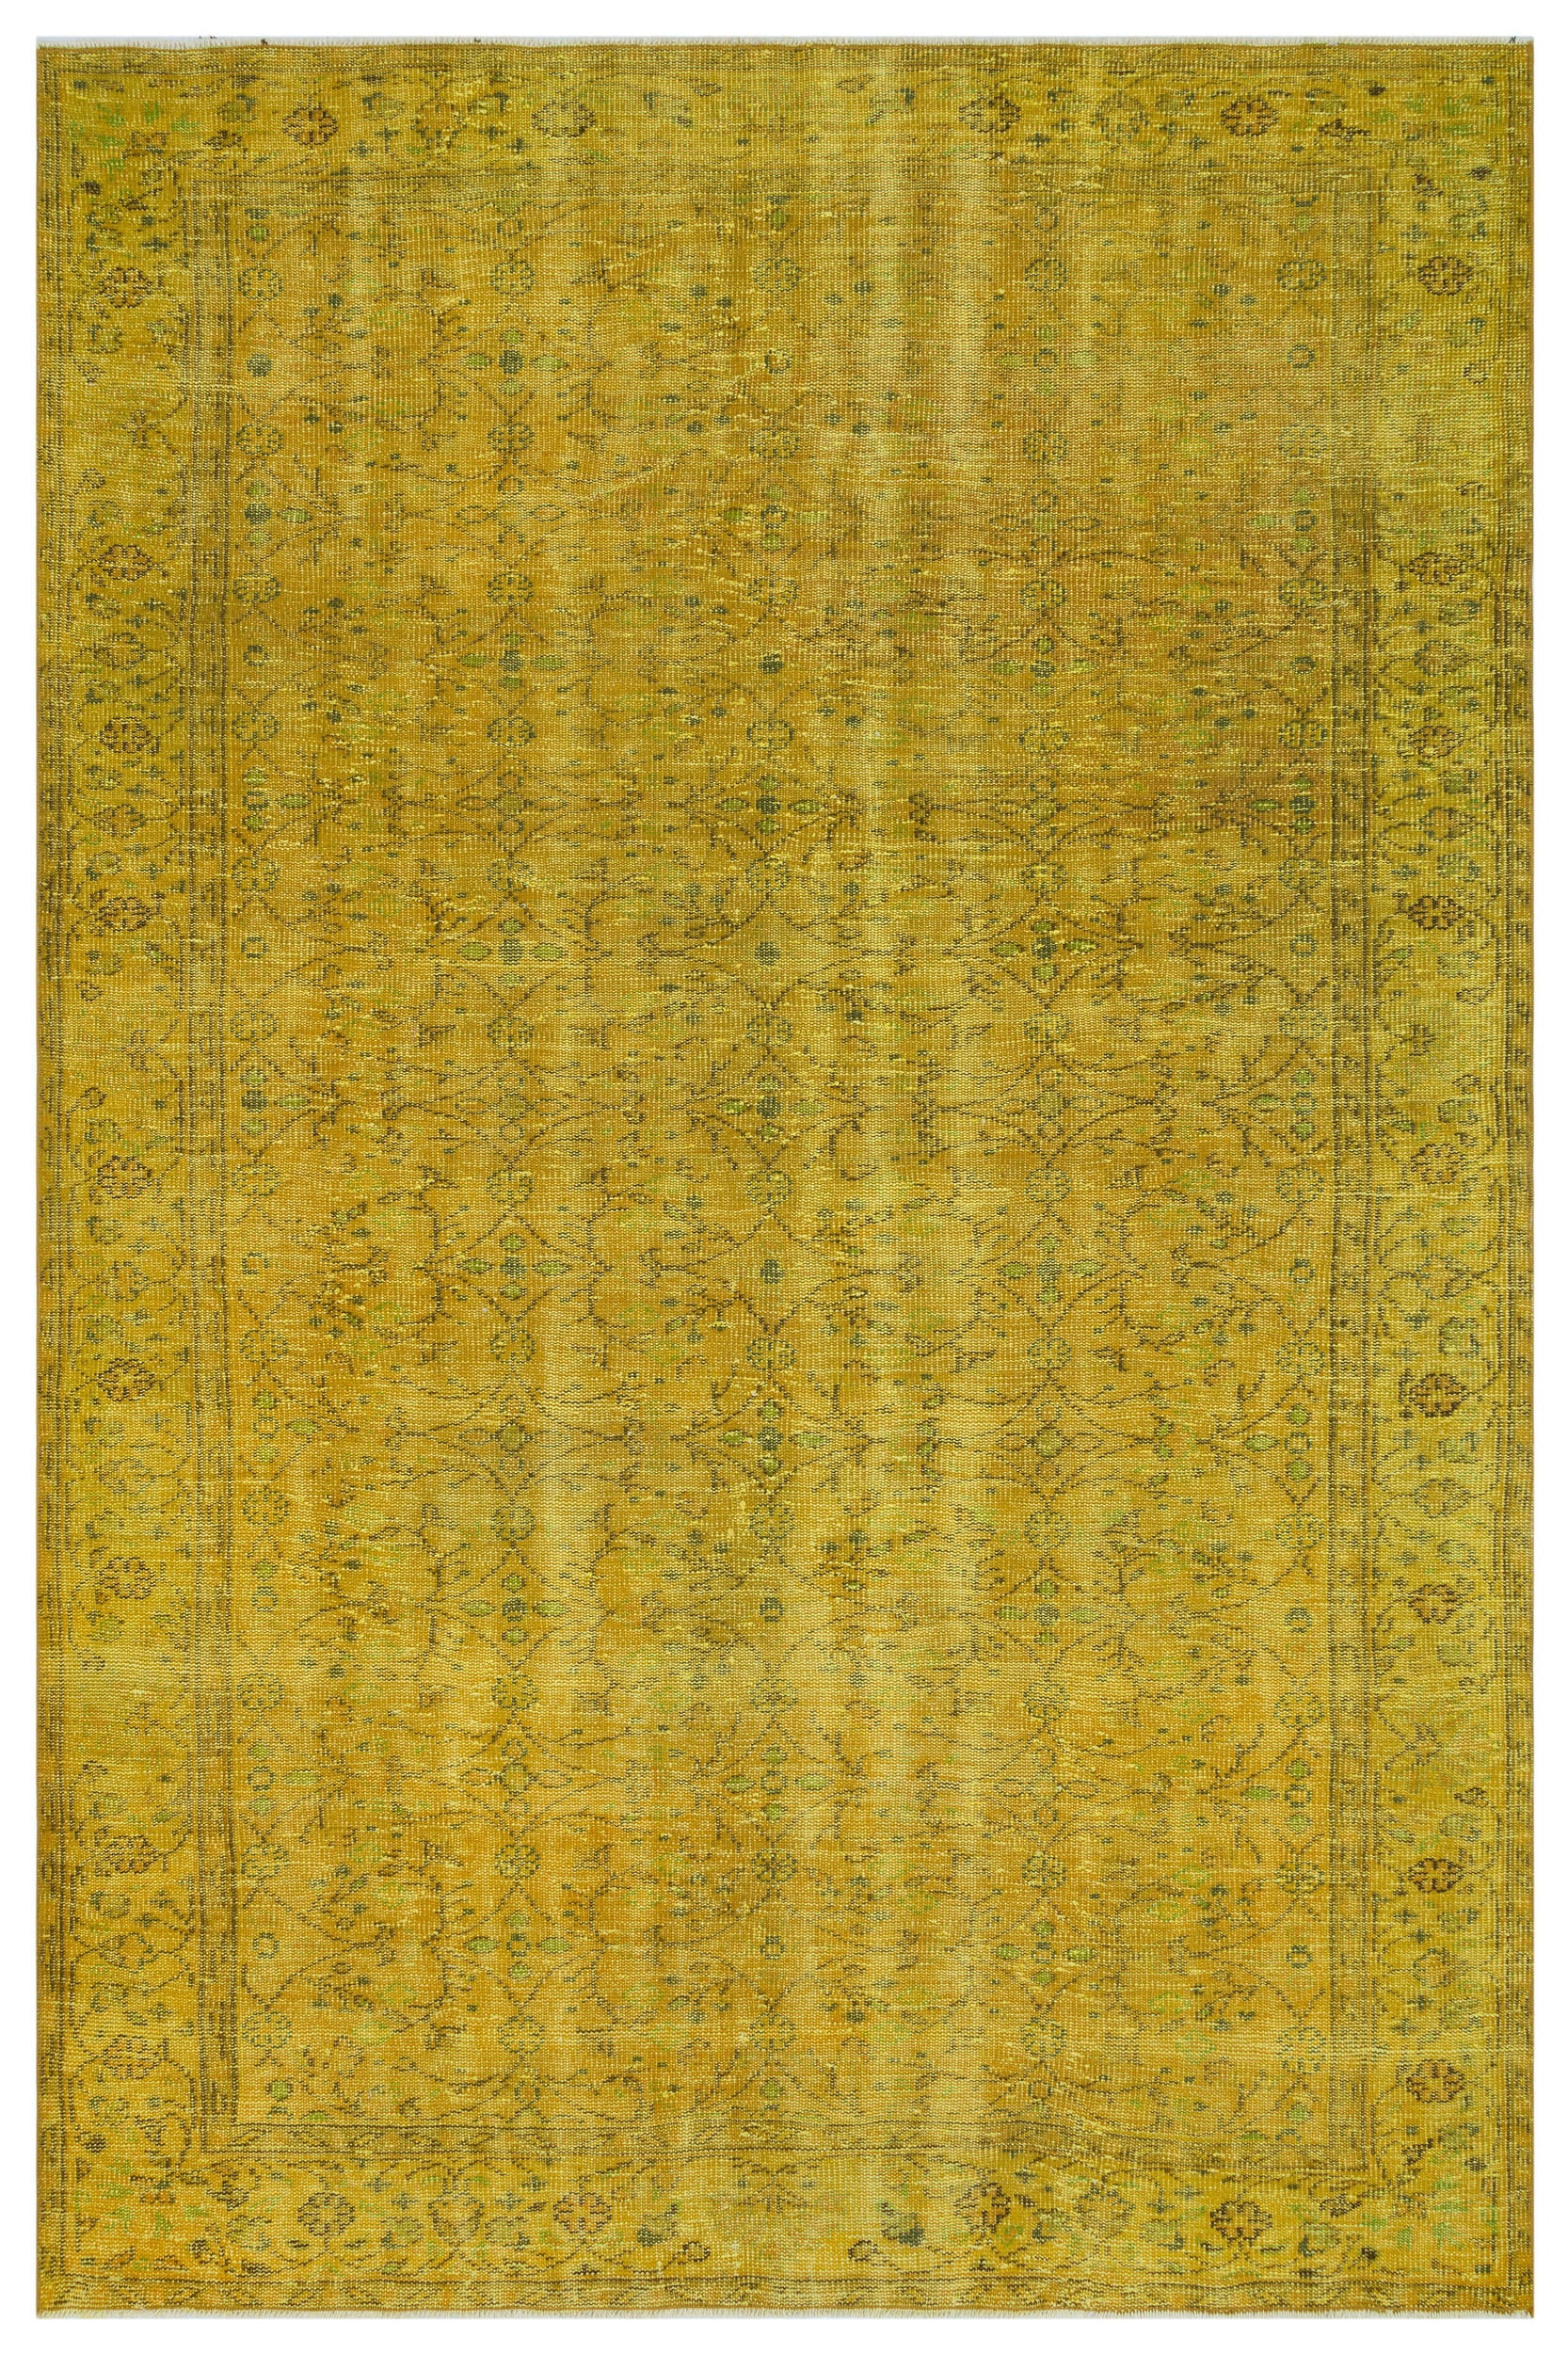 Yellow Over Dyed Vintage Rug 6'0'' x 9'3'' ft 184 x 282 cm